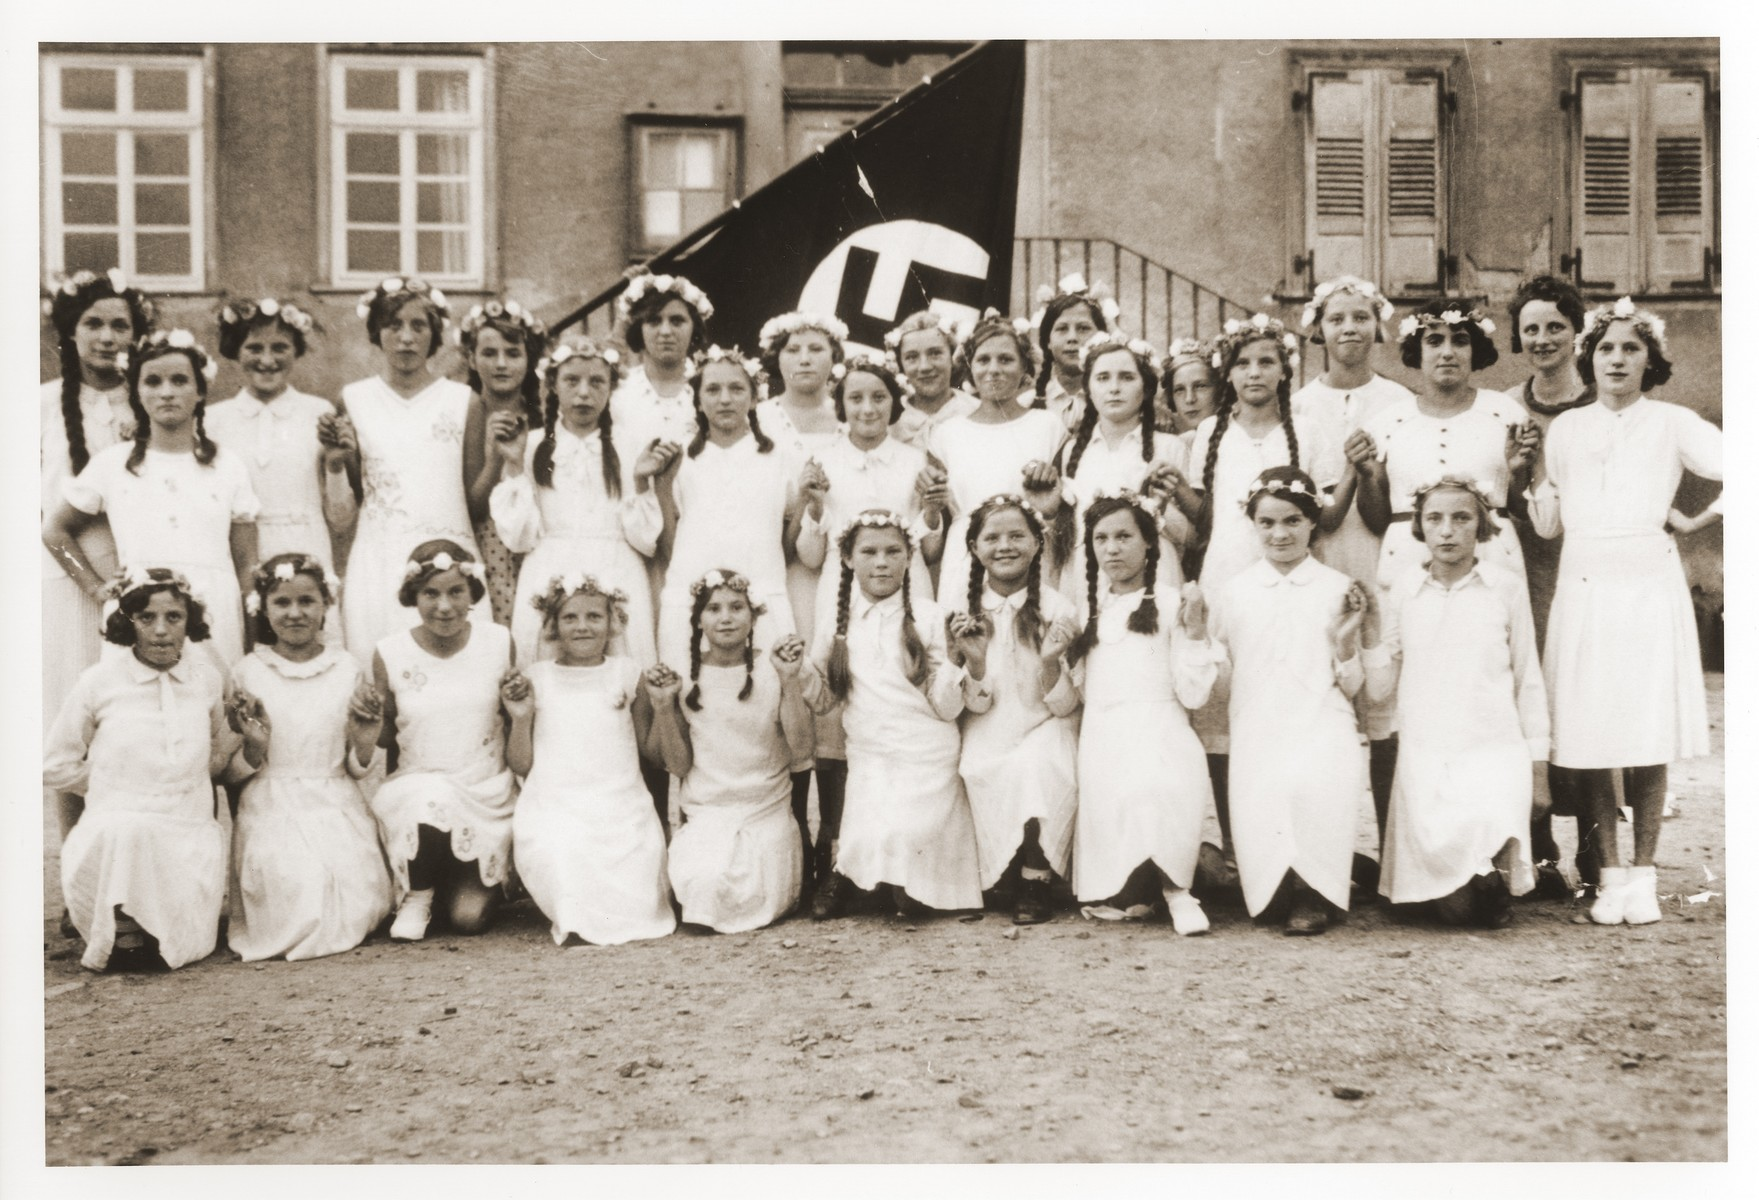 Group portrait of German girls posing outside their school in front of a Nazi flag.  Among those pictured is Lilli Eckstein six months before she was expelled from the school for being Jewish.